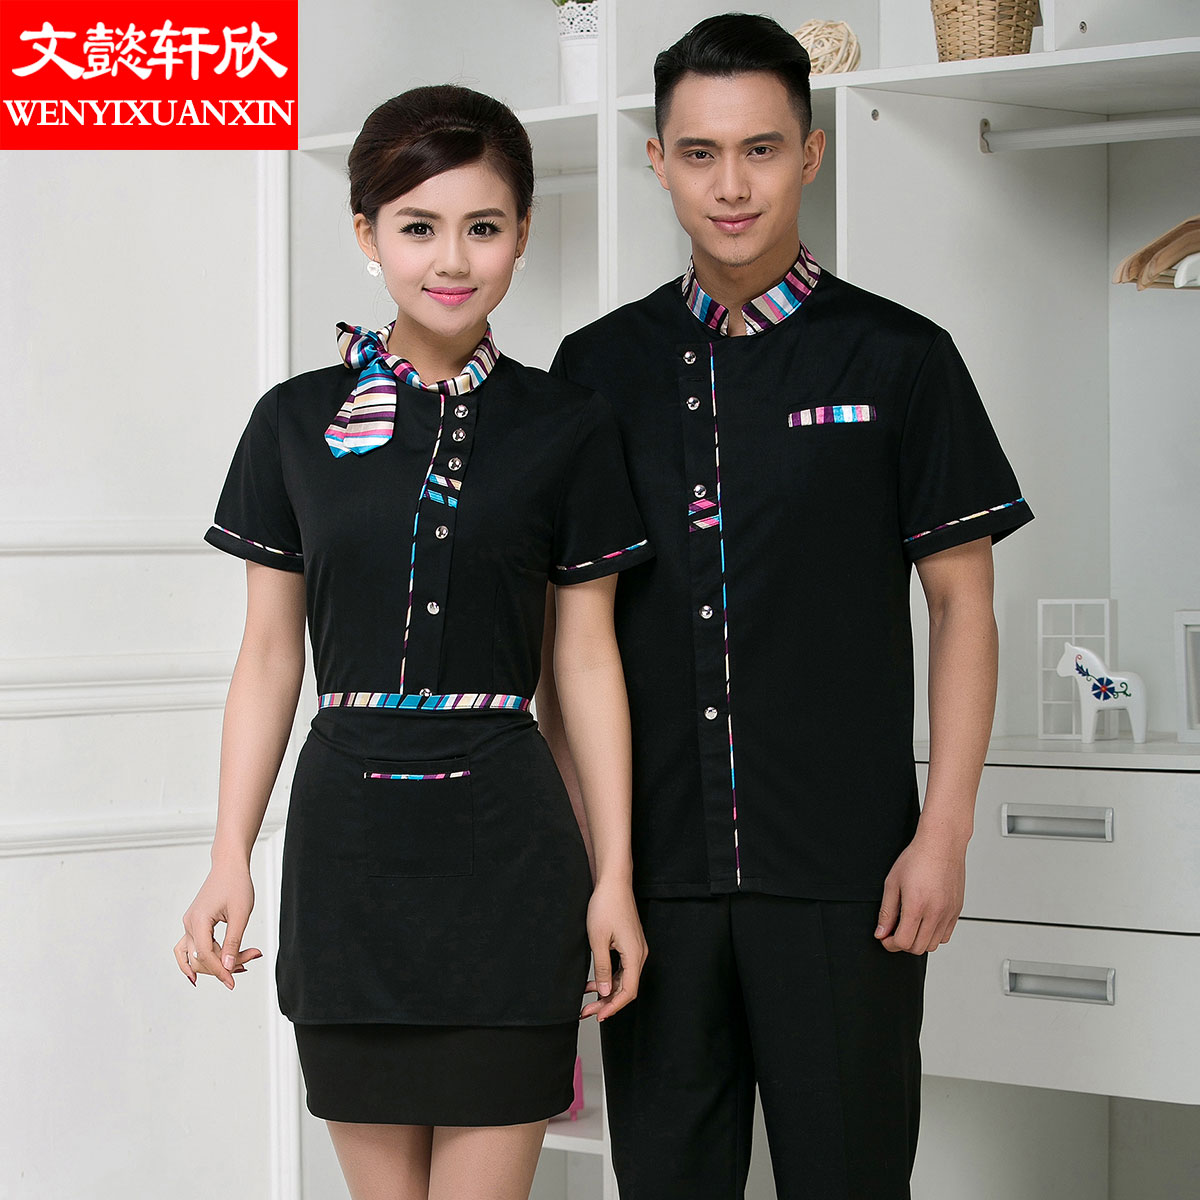 The hotel waiter overalls overalls summer clothes for men and women short sleeve summer hotel waiter uniforms short sleeve